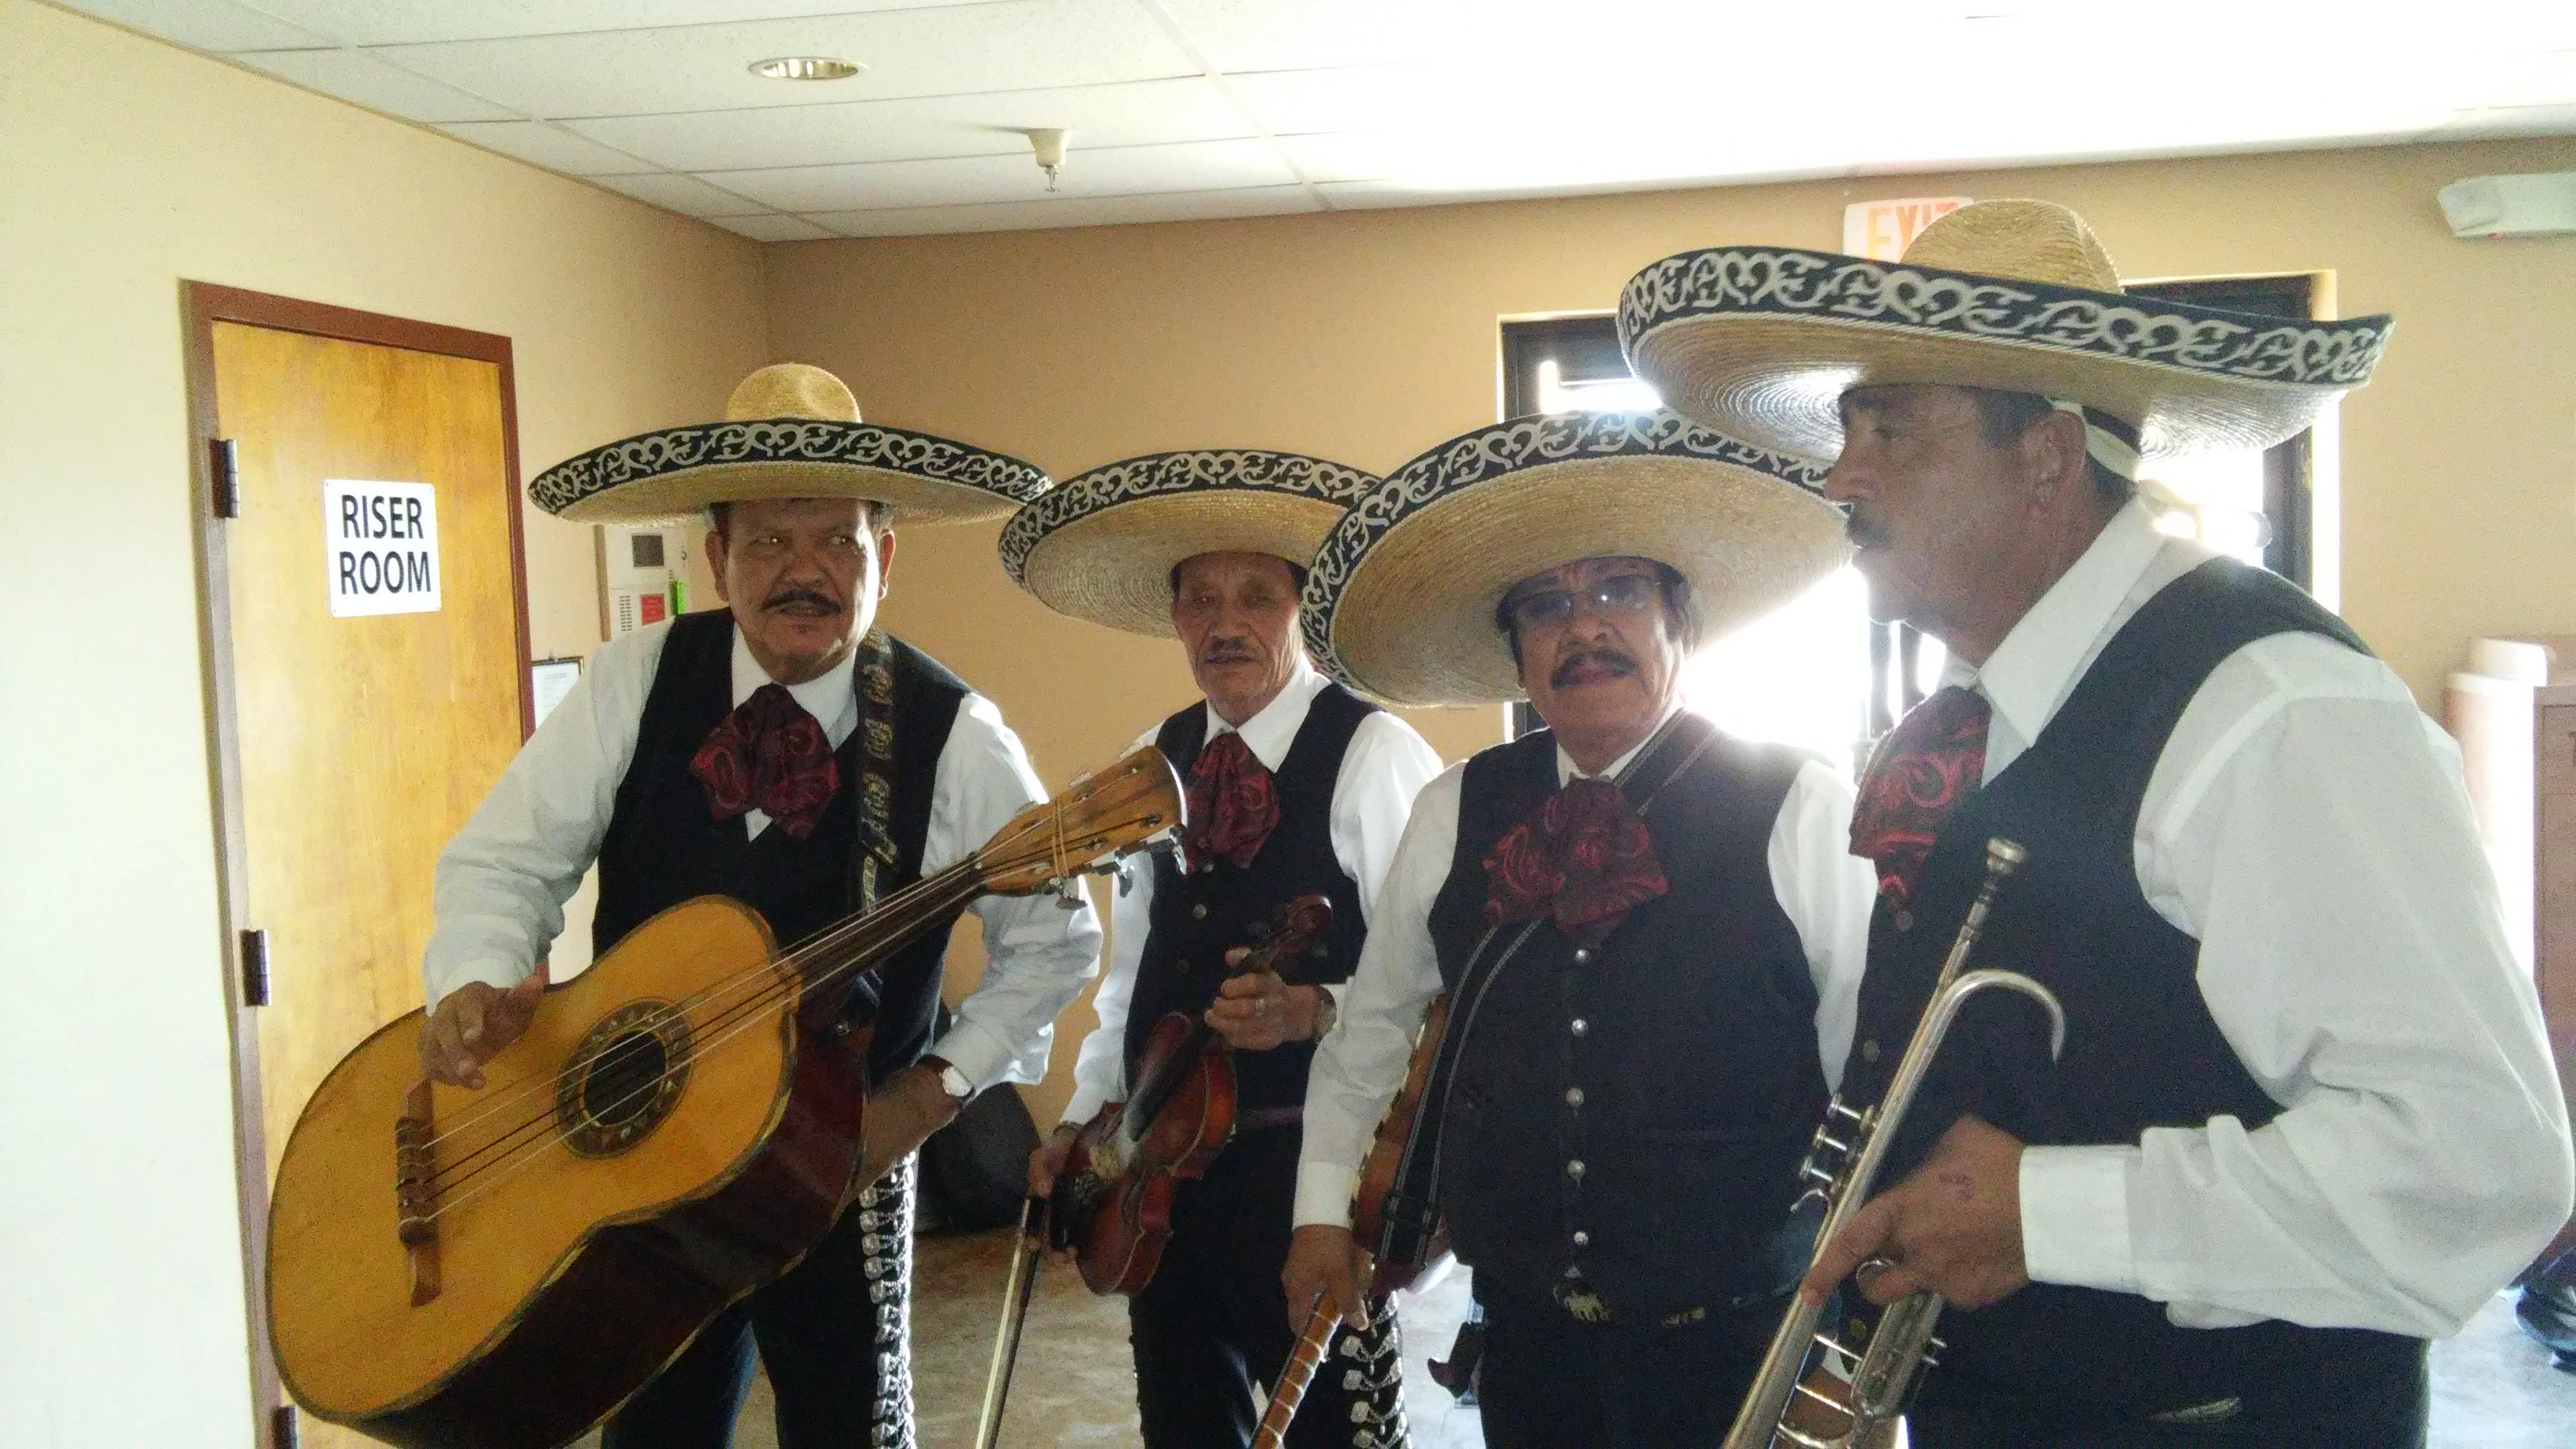 Mariachi Alegre de Tucson in performance